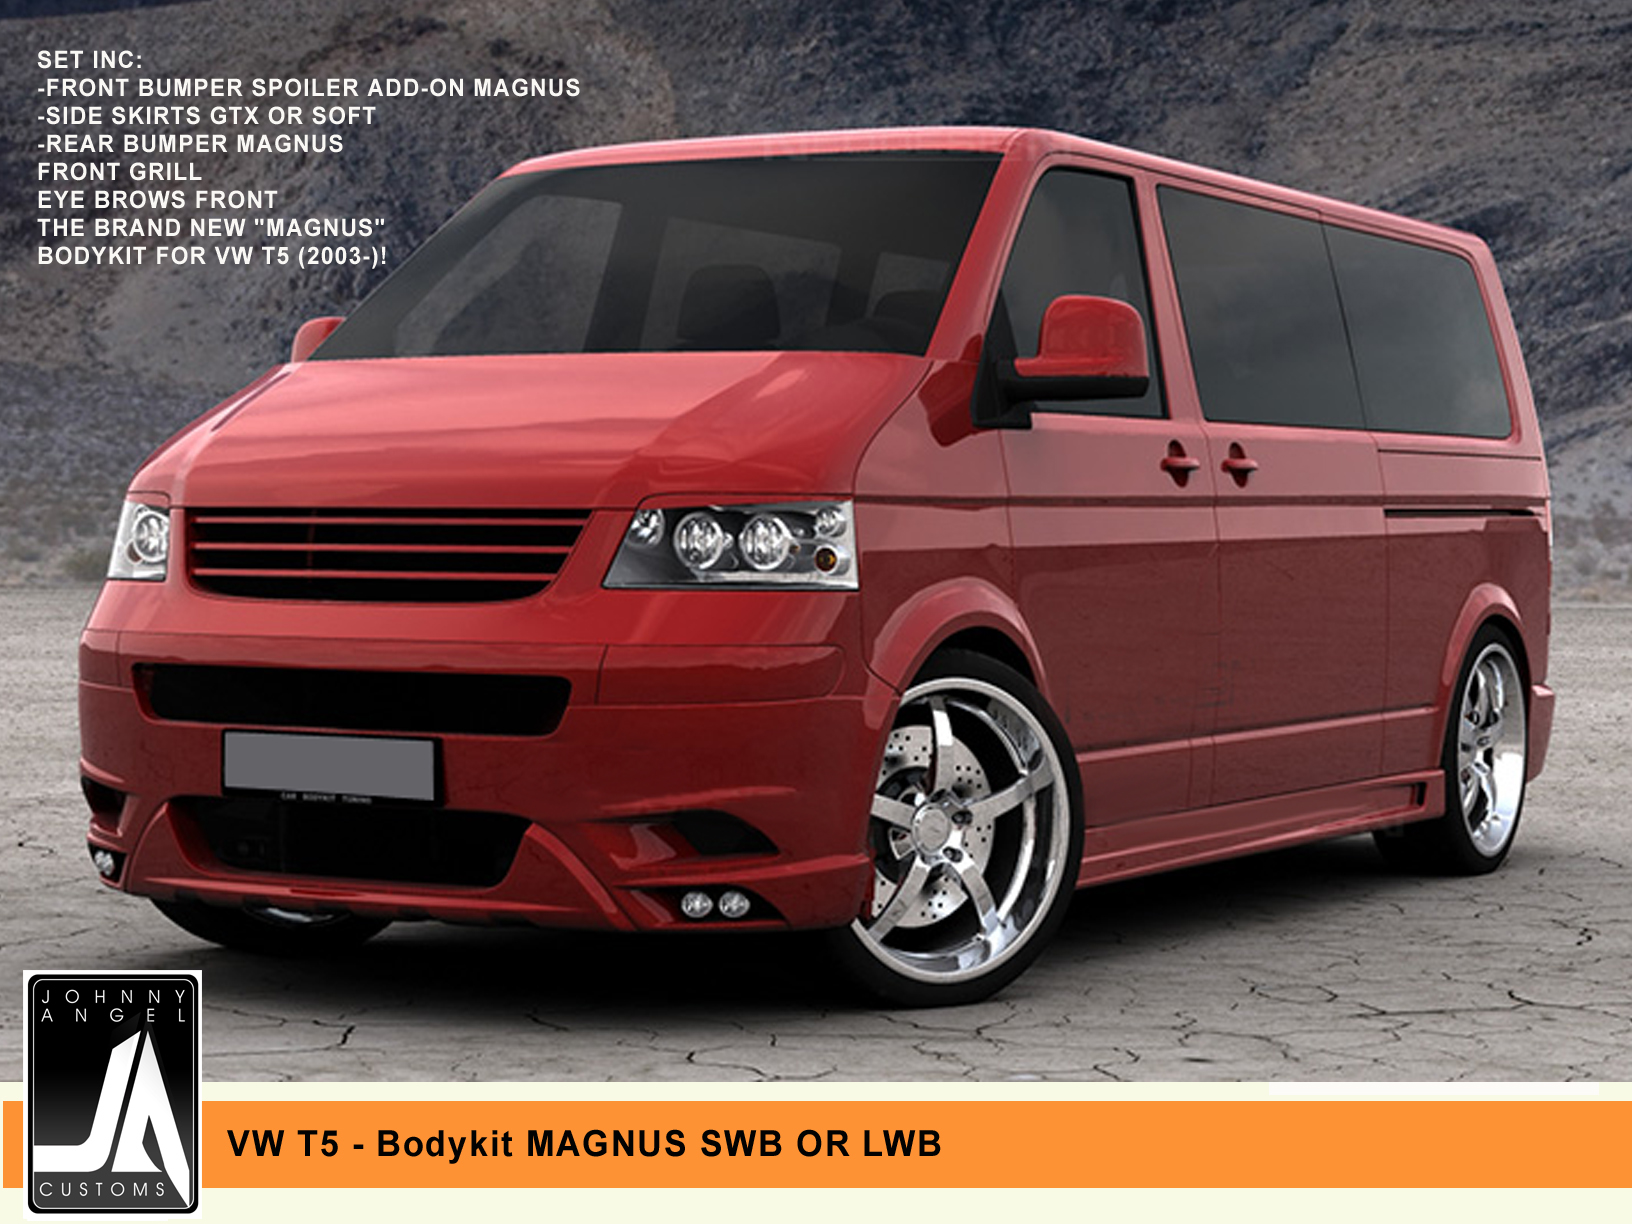 VW T5 - Bodykit MAGNUS SWB OR LWB  Johnny Angel Customs pic 1